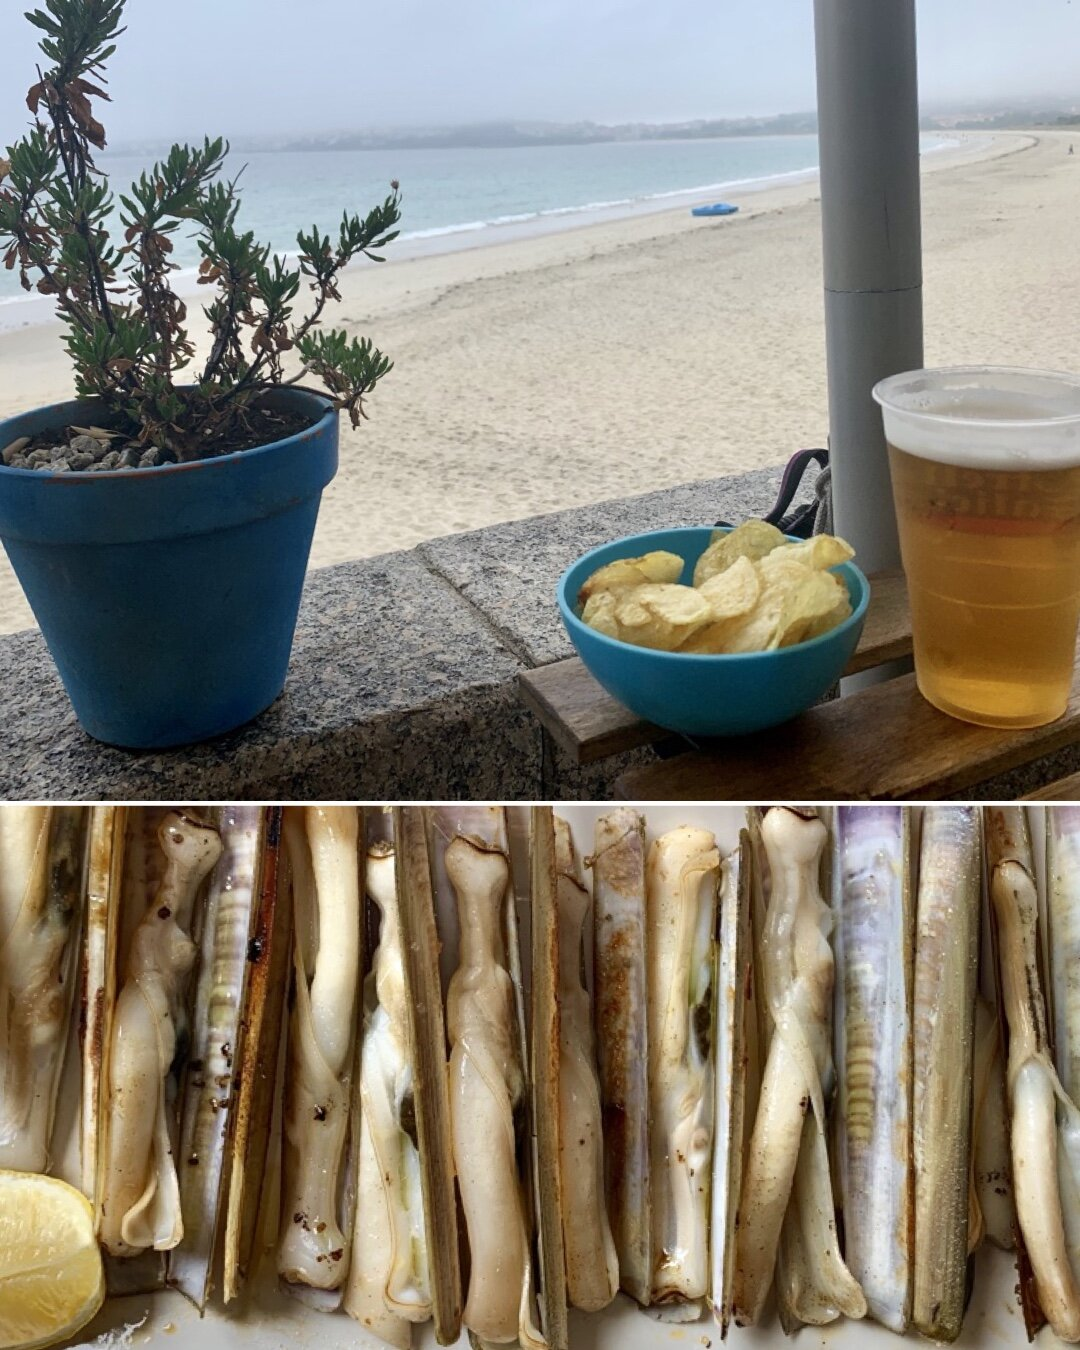 A celebratory beer followed by grilled razor-clams.